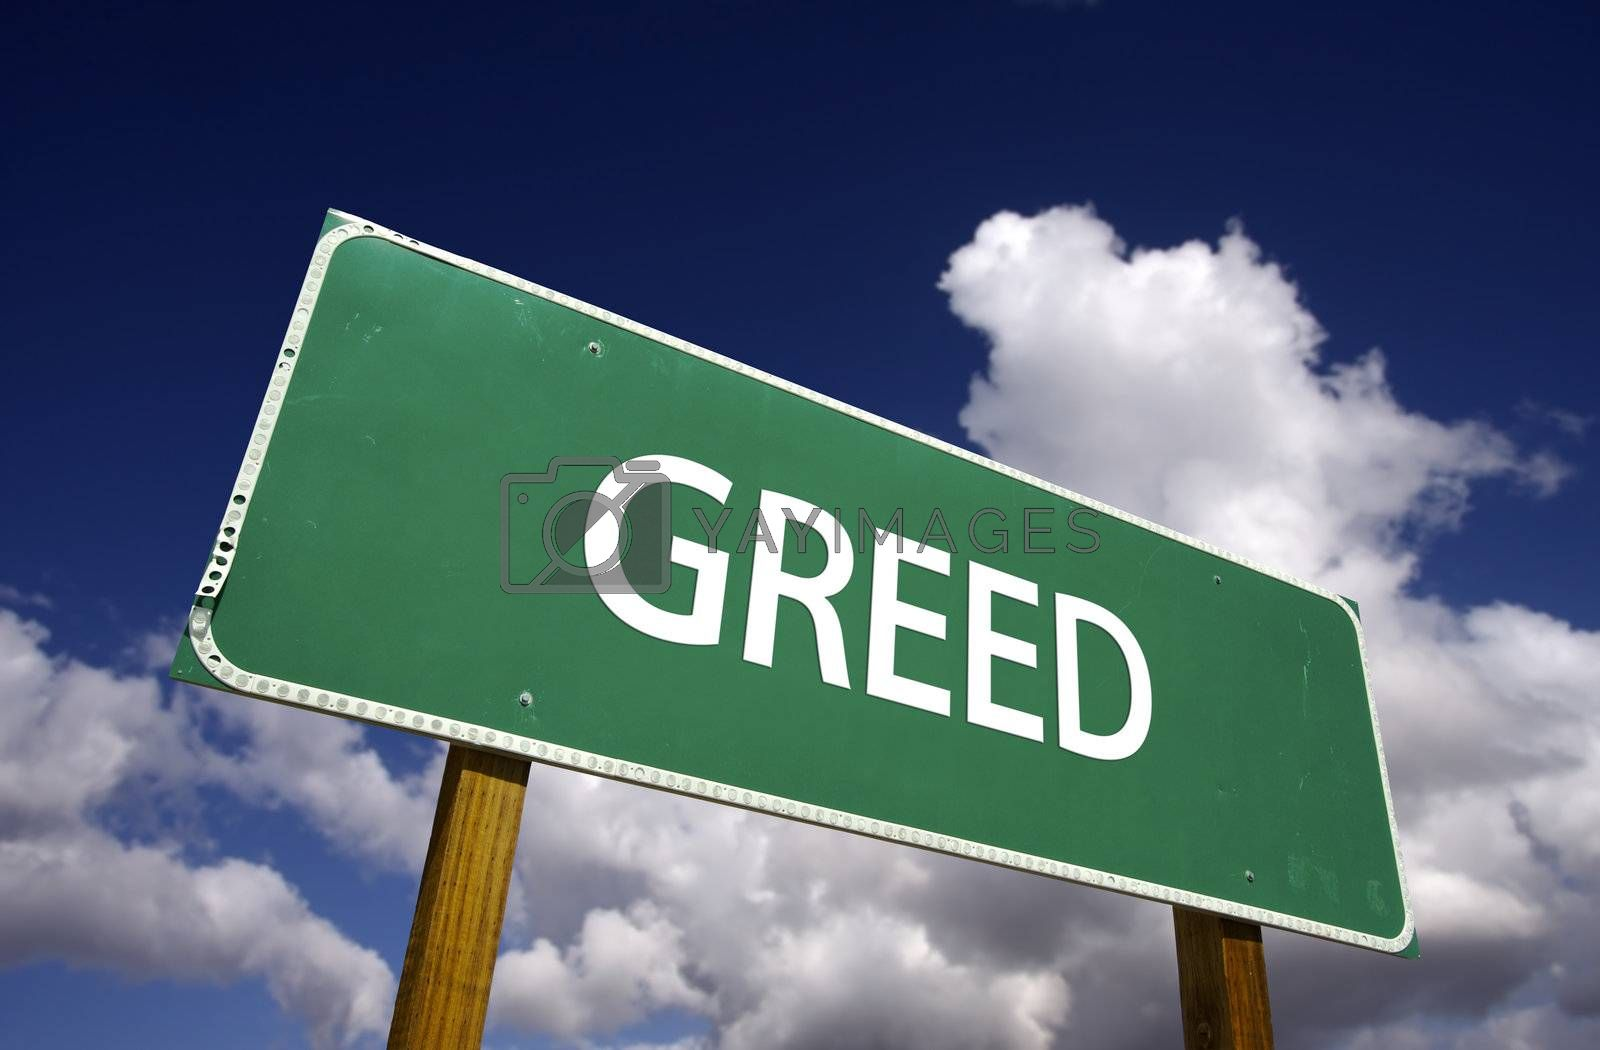 Greed Road Sign by Feverpitched